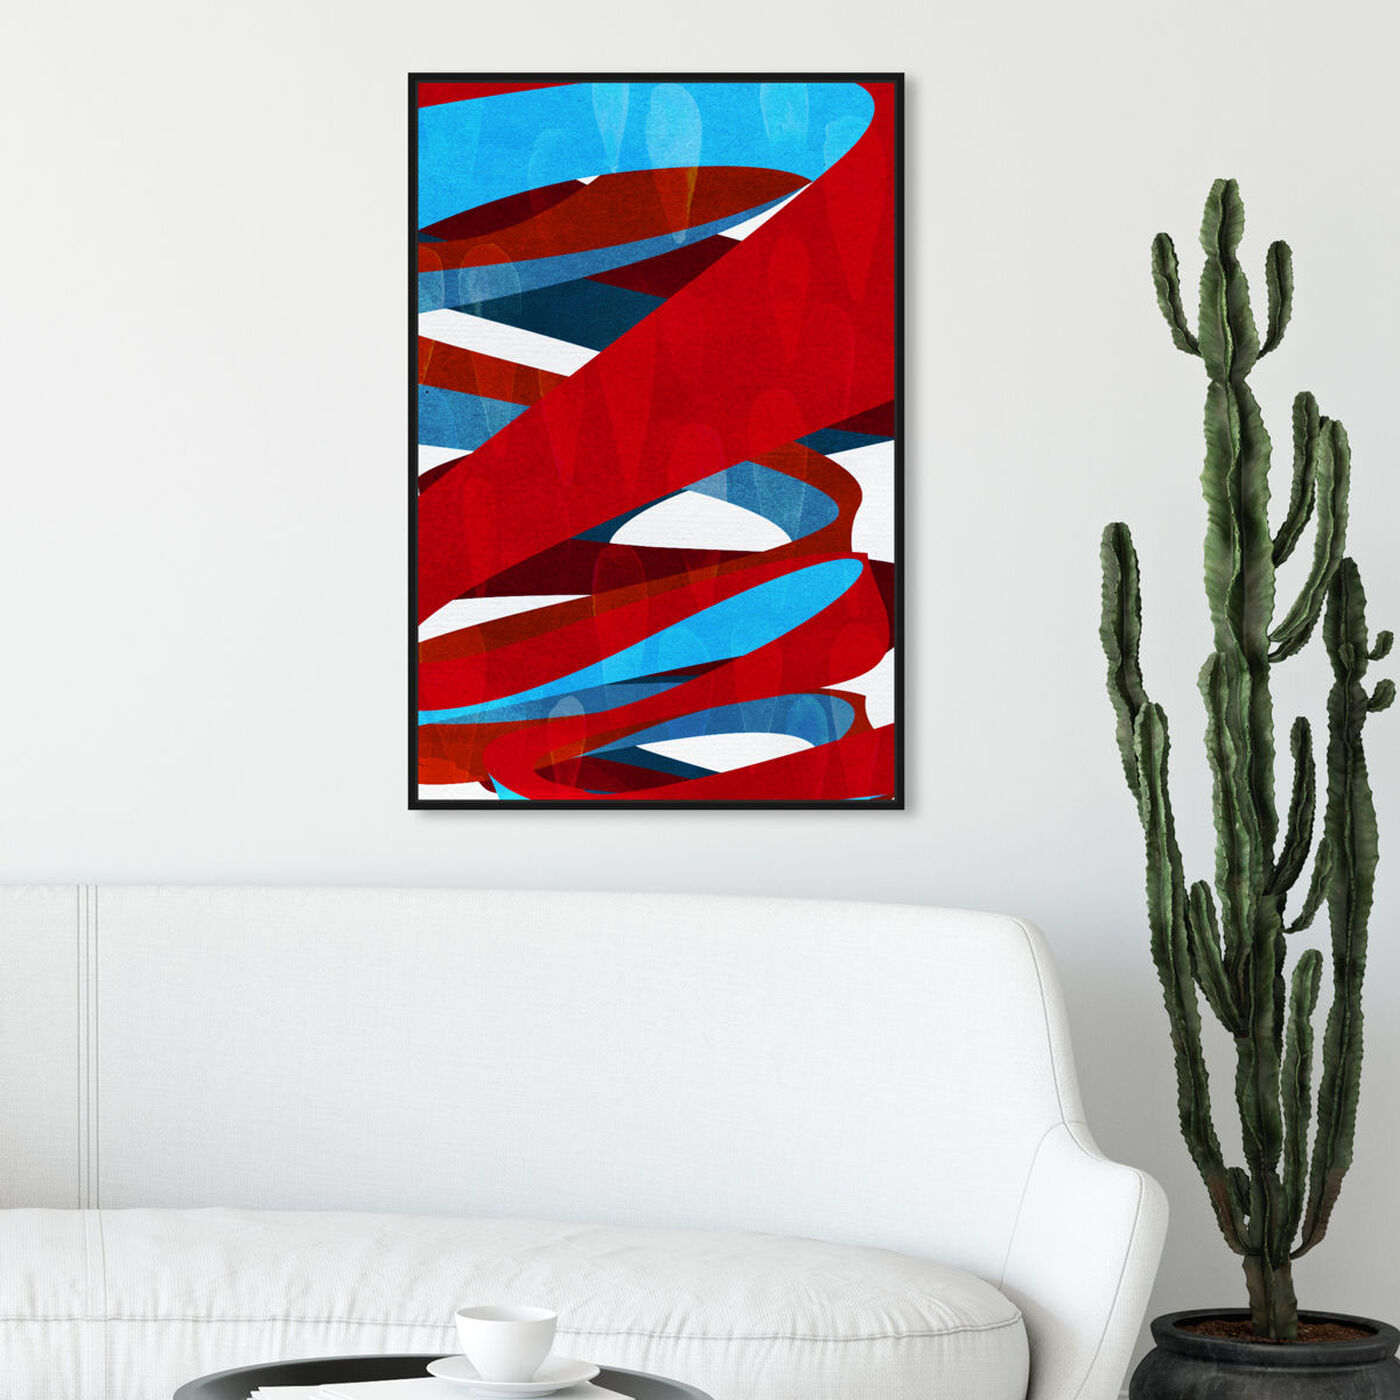 Hanging view of Spiral Paths featuring abstract and patterns art.